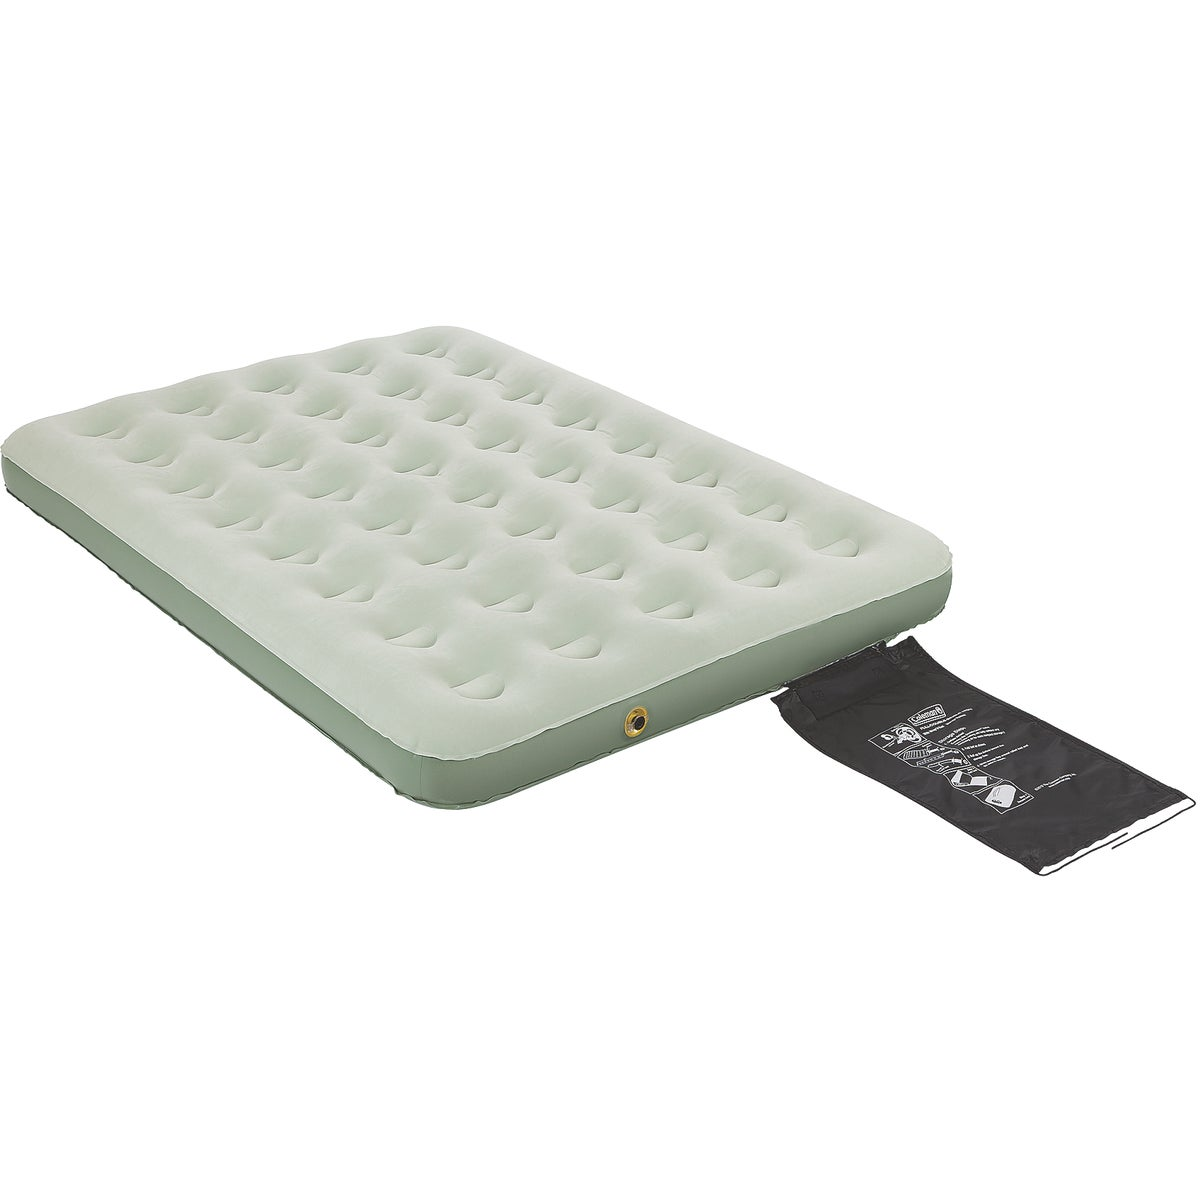 54X74 FULL AIR MATTRESS